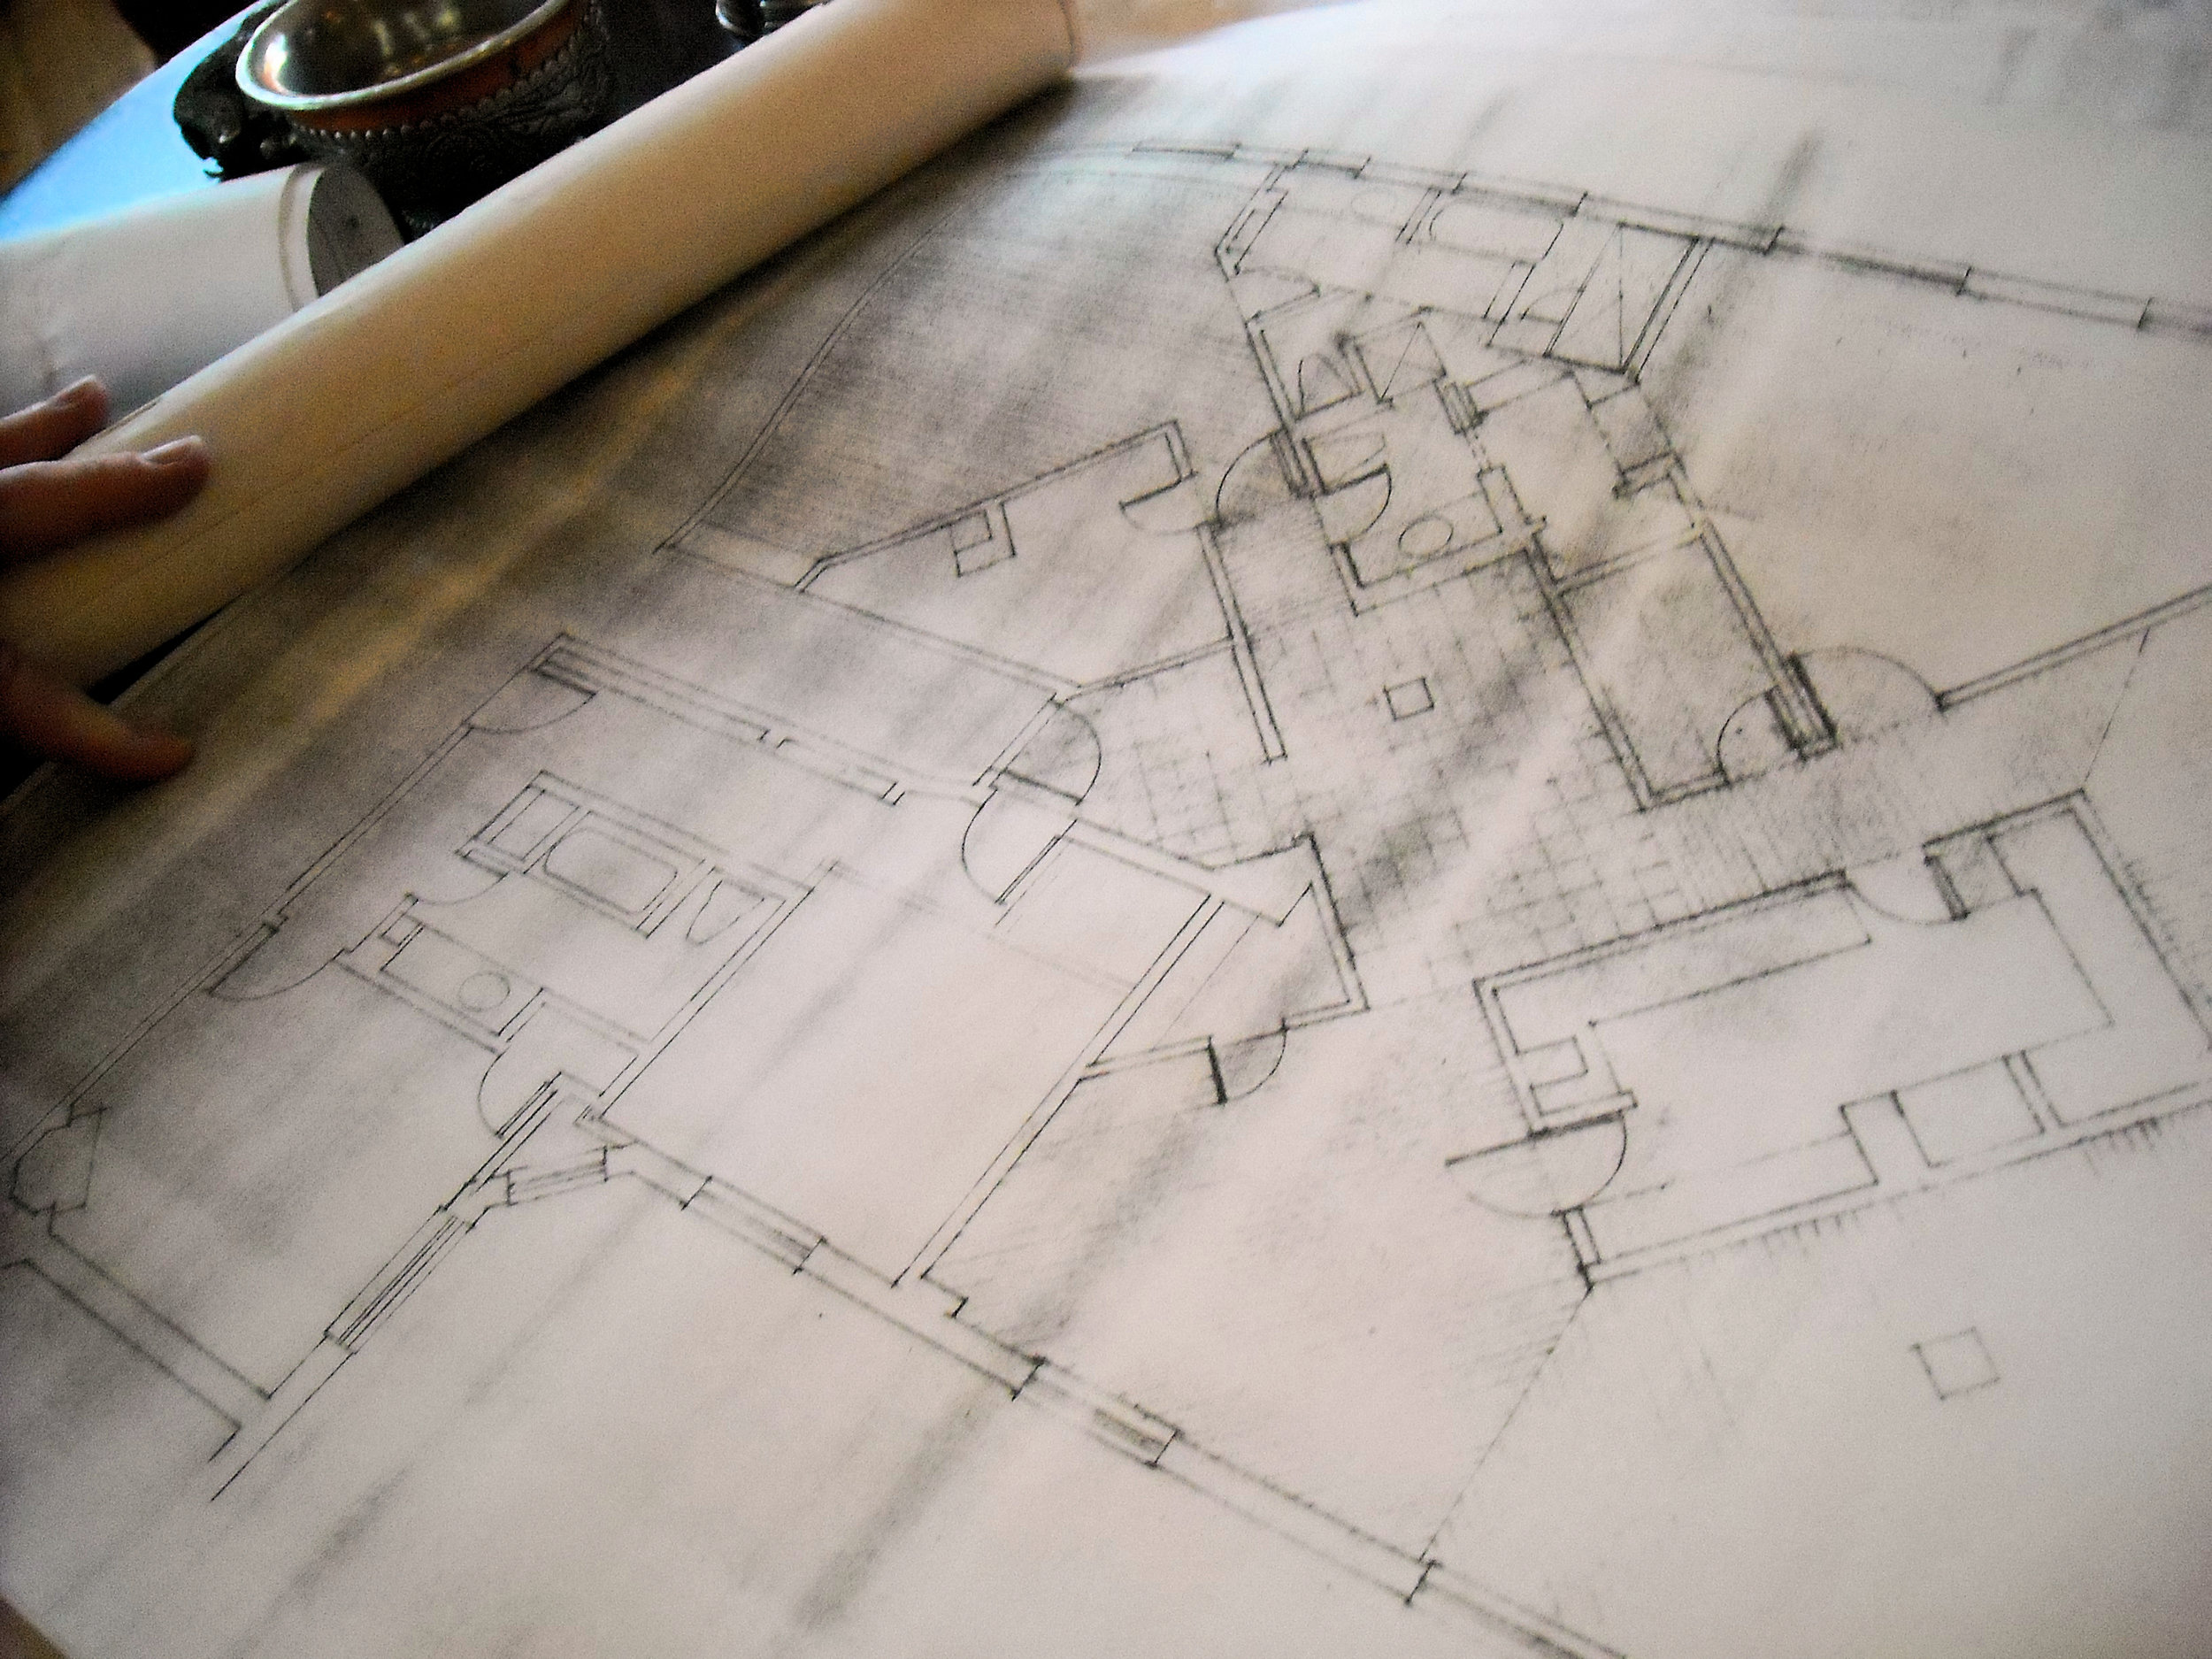 The owner of the Bernstein/Ephron penthouse apartment shows me the blueprints for it.